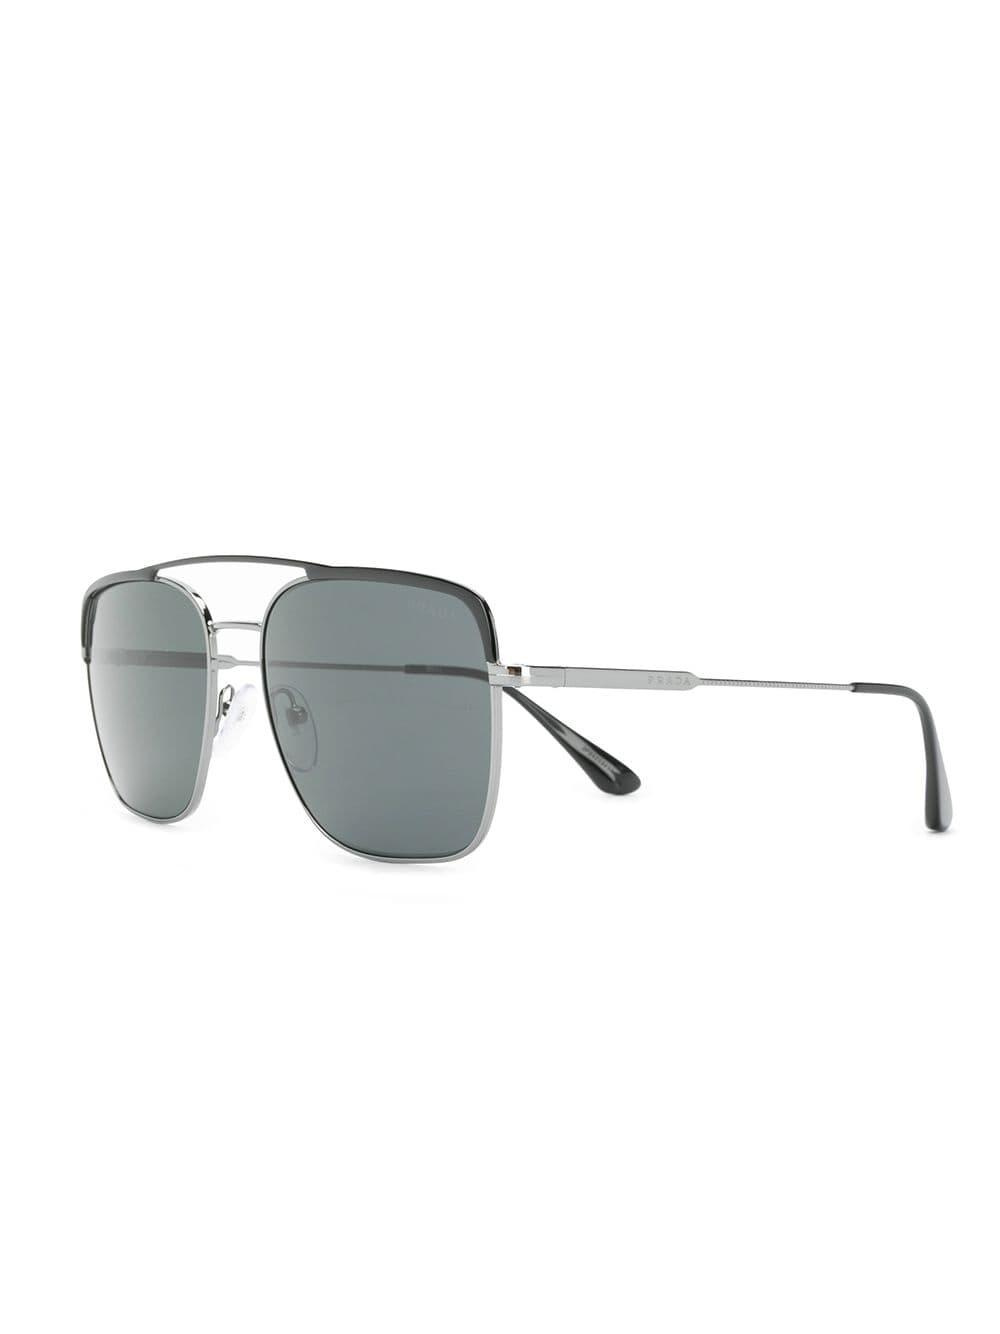 3994dc6ffc7 Prada Contrast Bridge Sunglasses in Black for Men - Lyst